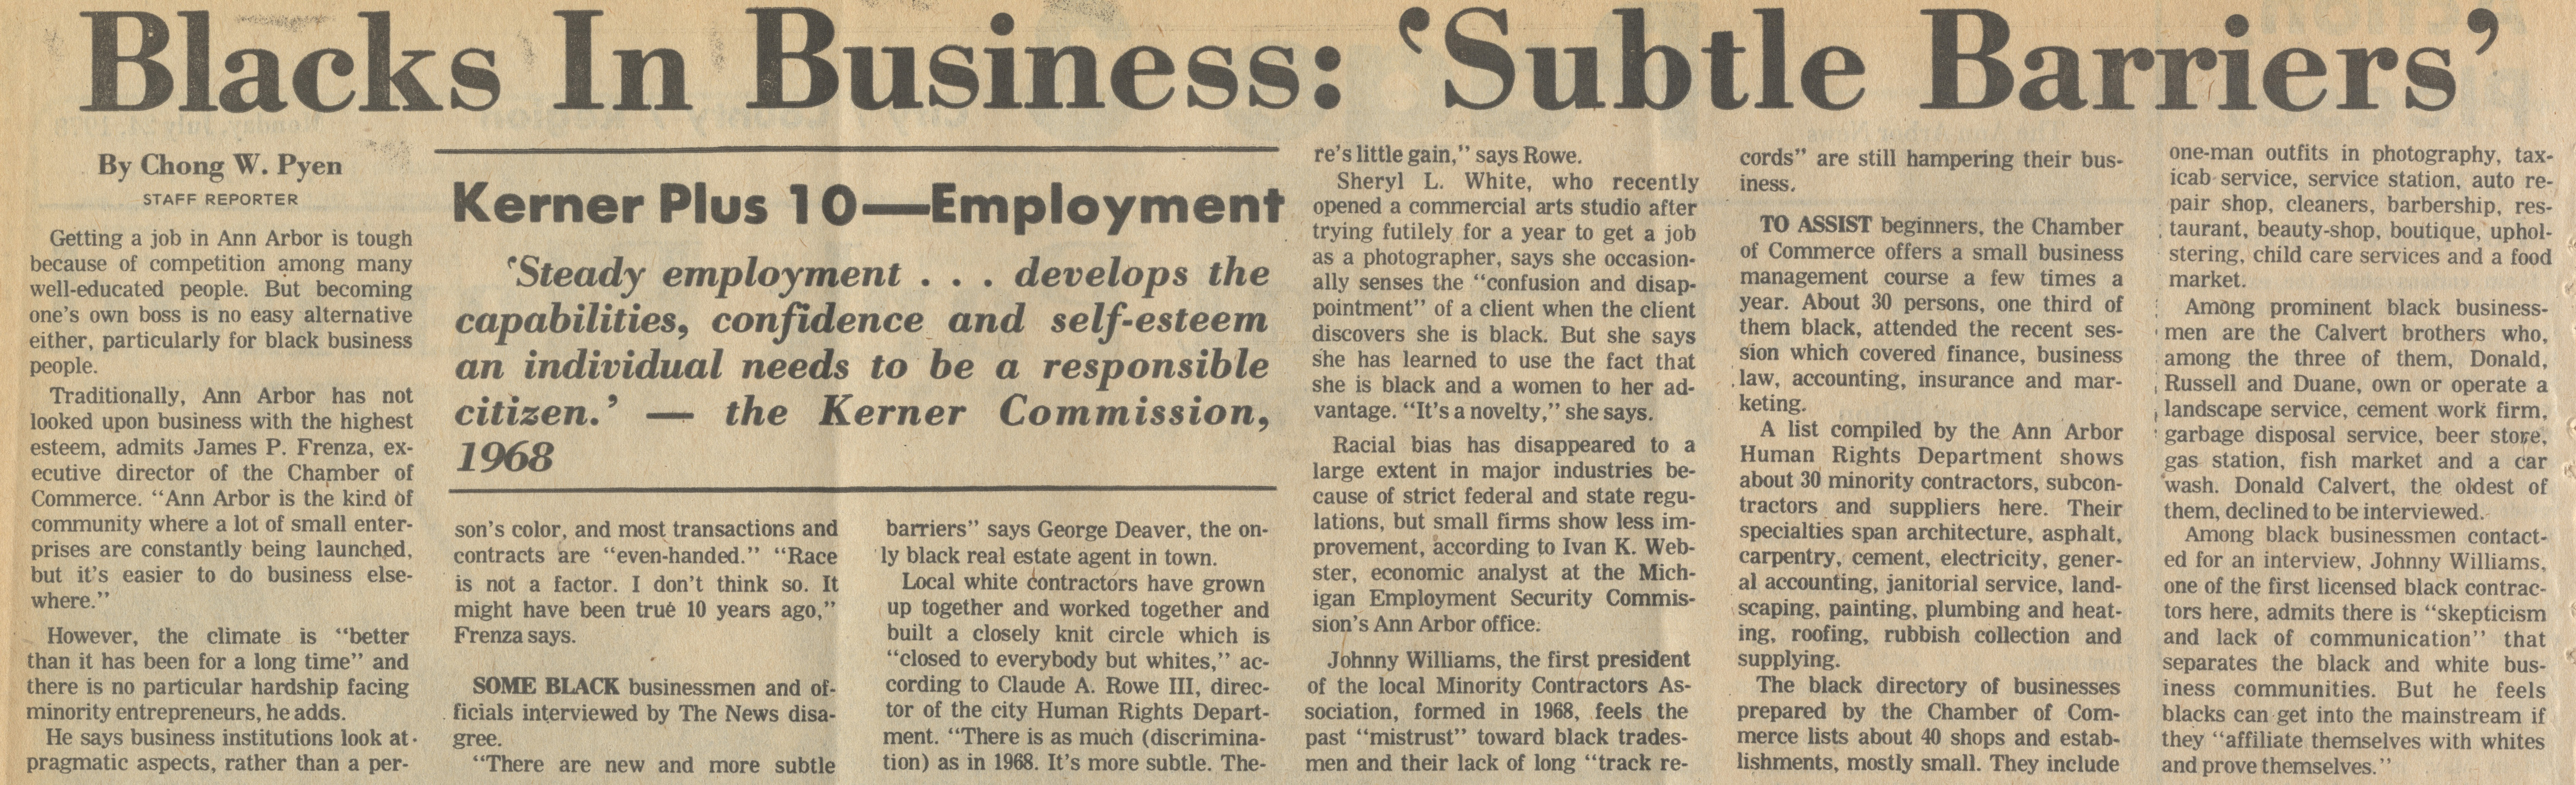 "Blacks in Business: ""Subtle Barriers"" Kerner Plus 10 - Employment image"